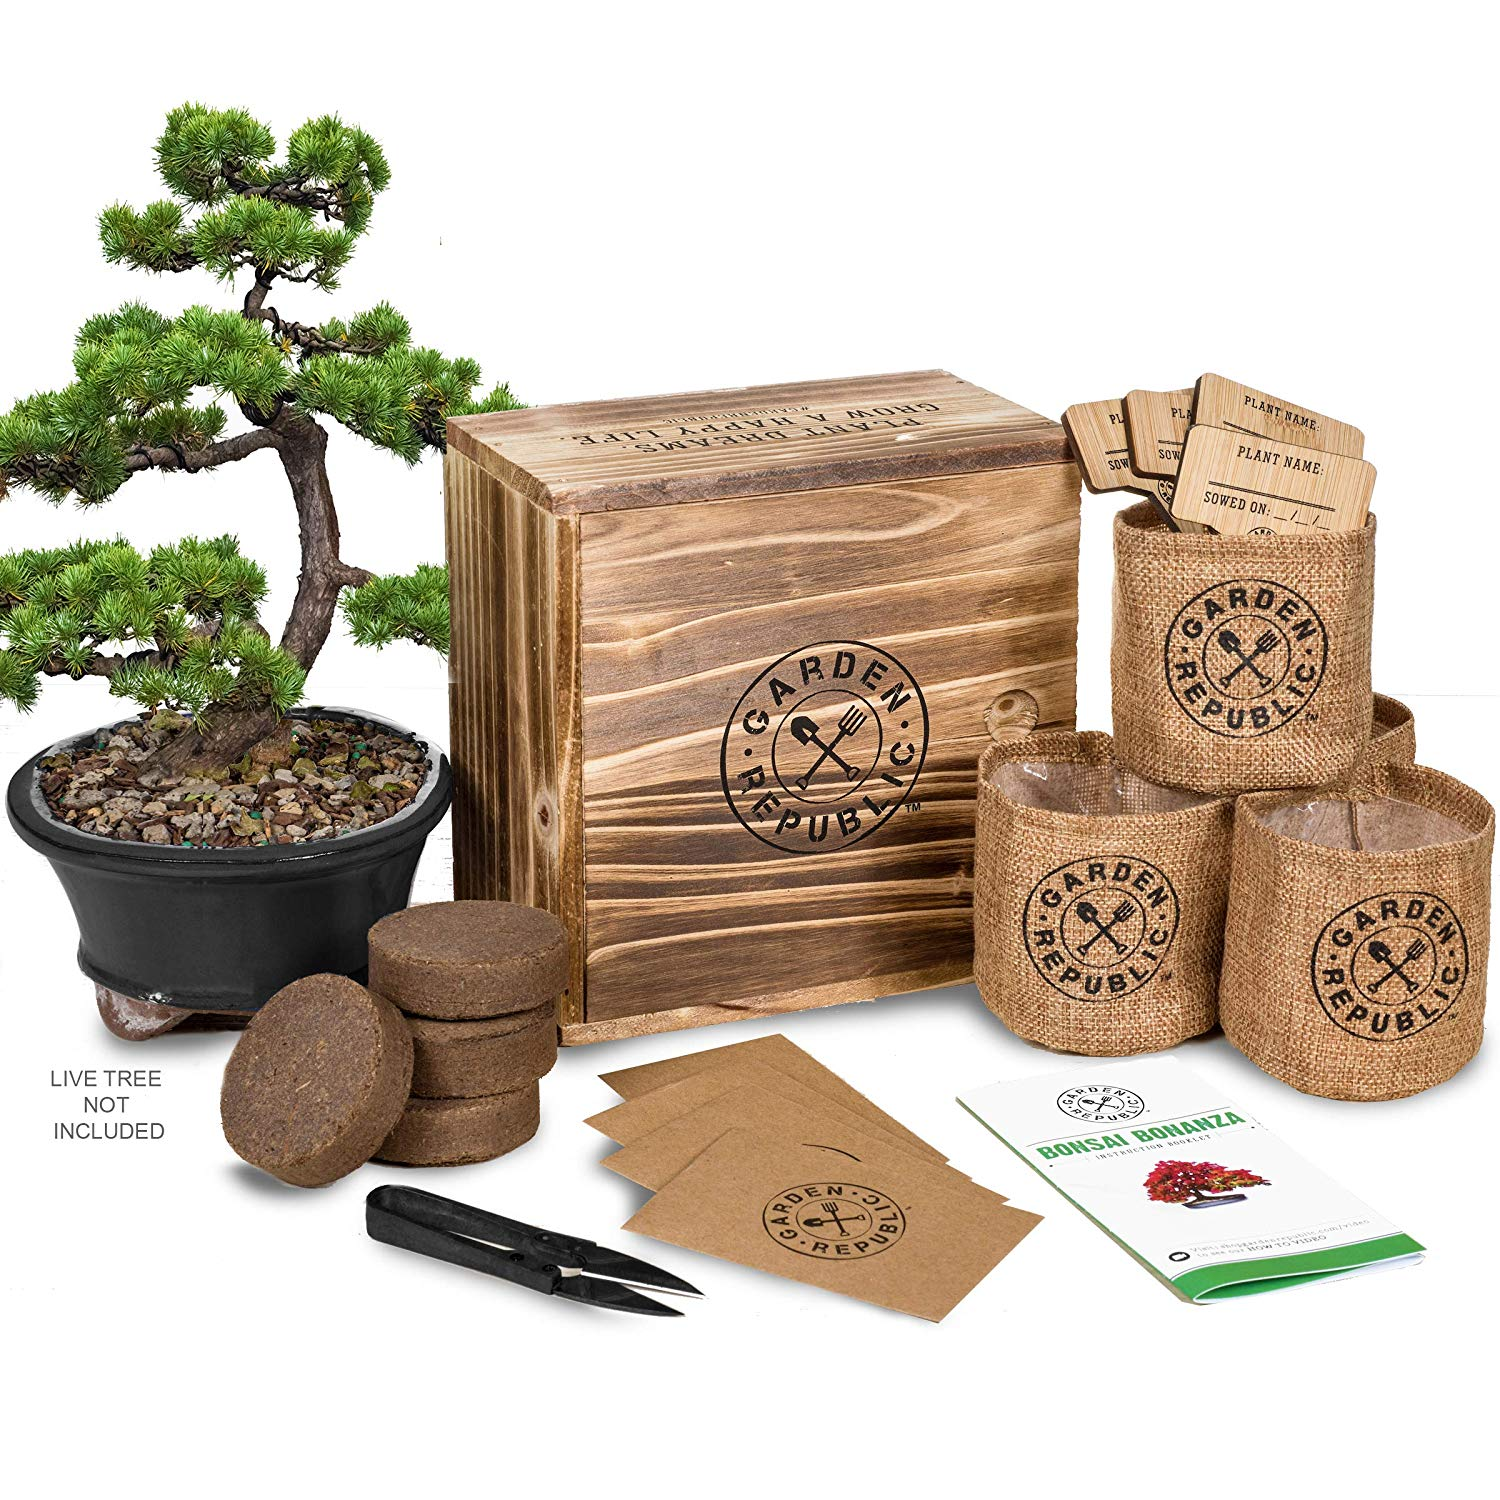 Bonsai tree seed starter kits are great gifts for mom